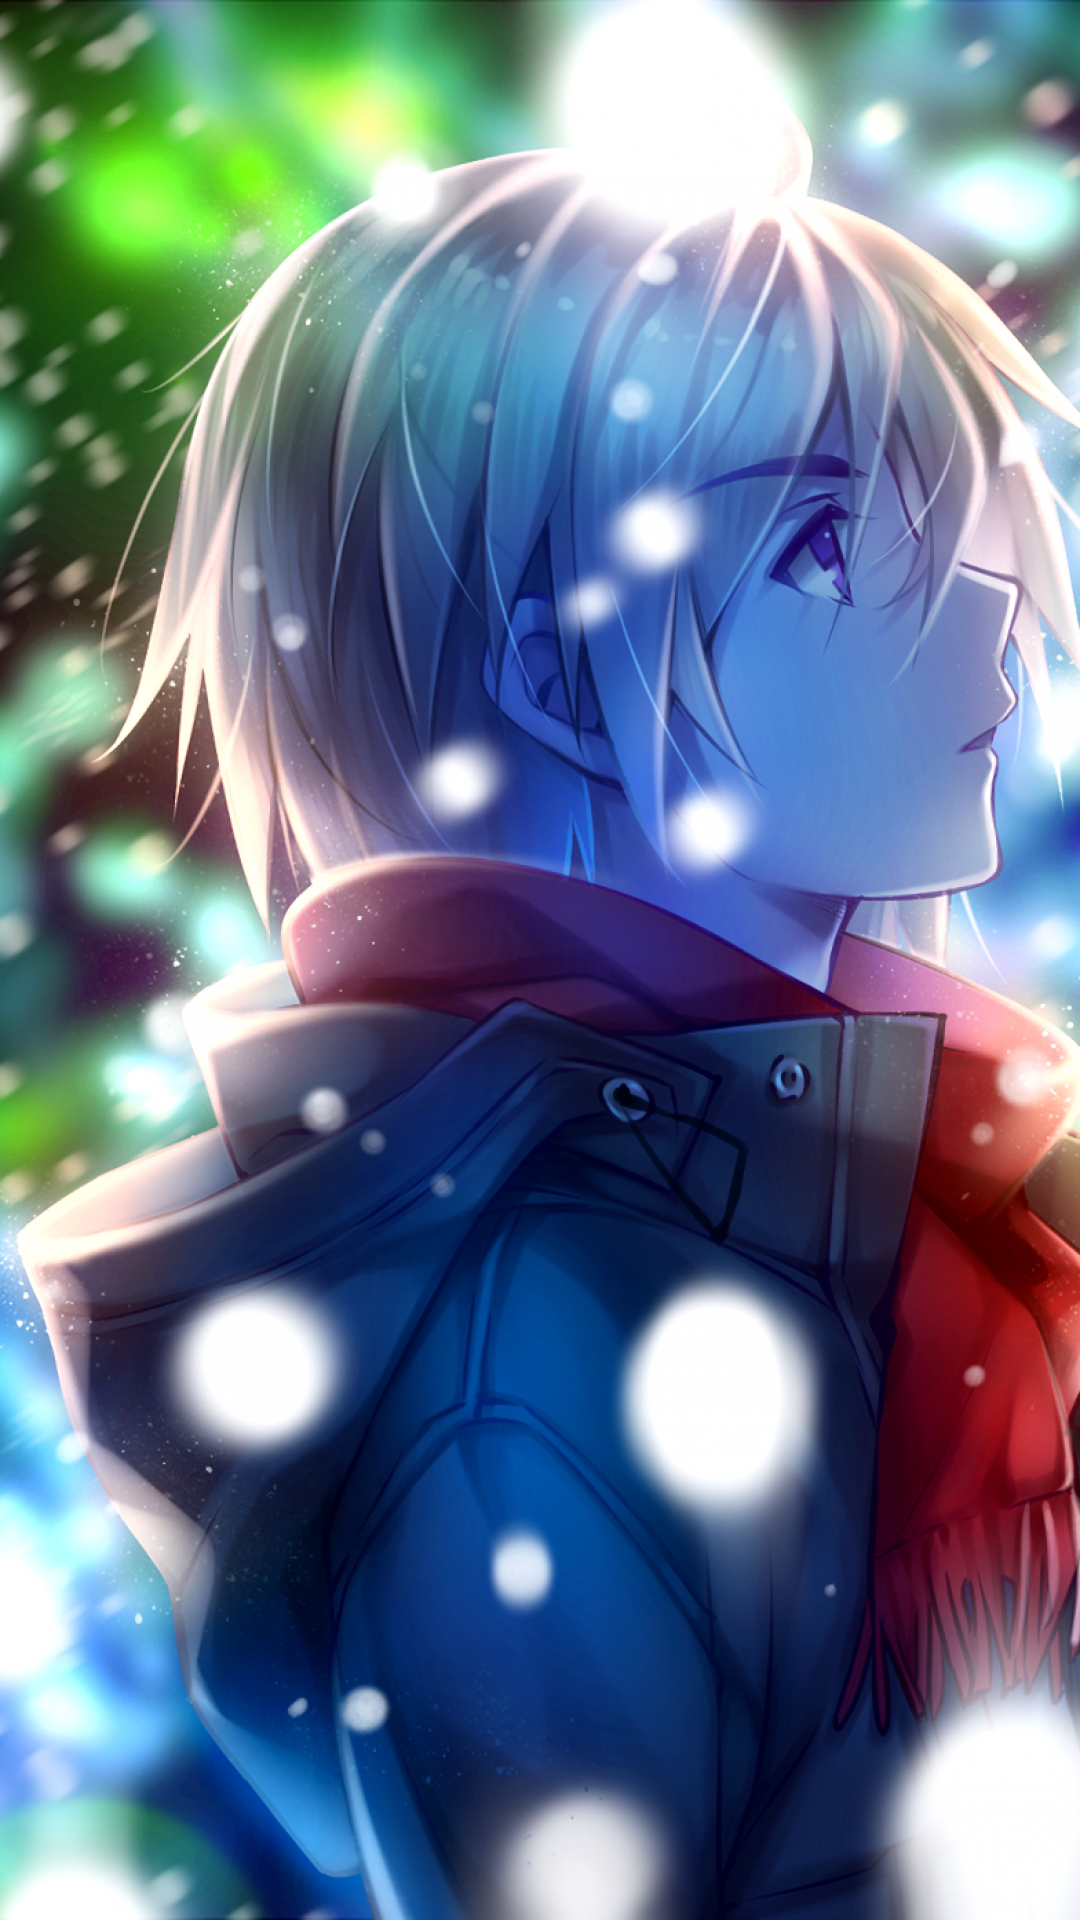 Cute Anime Boy Mobile Wallpapers - Wallpaper Cave